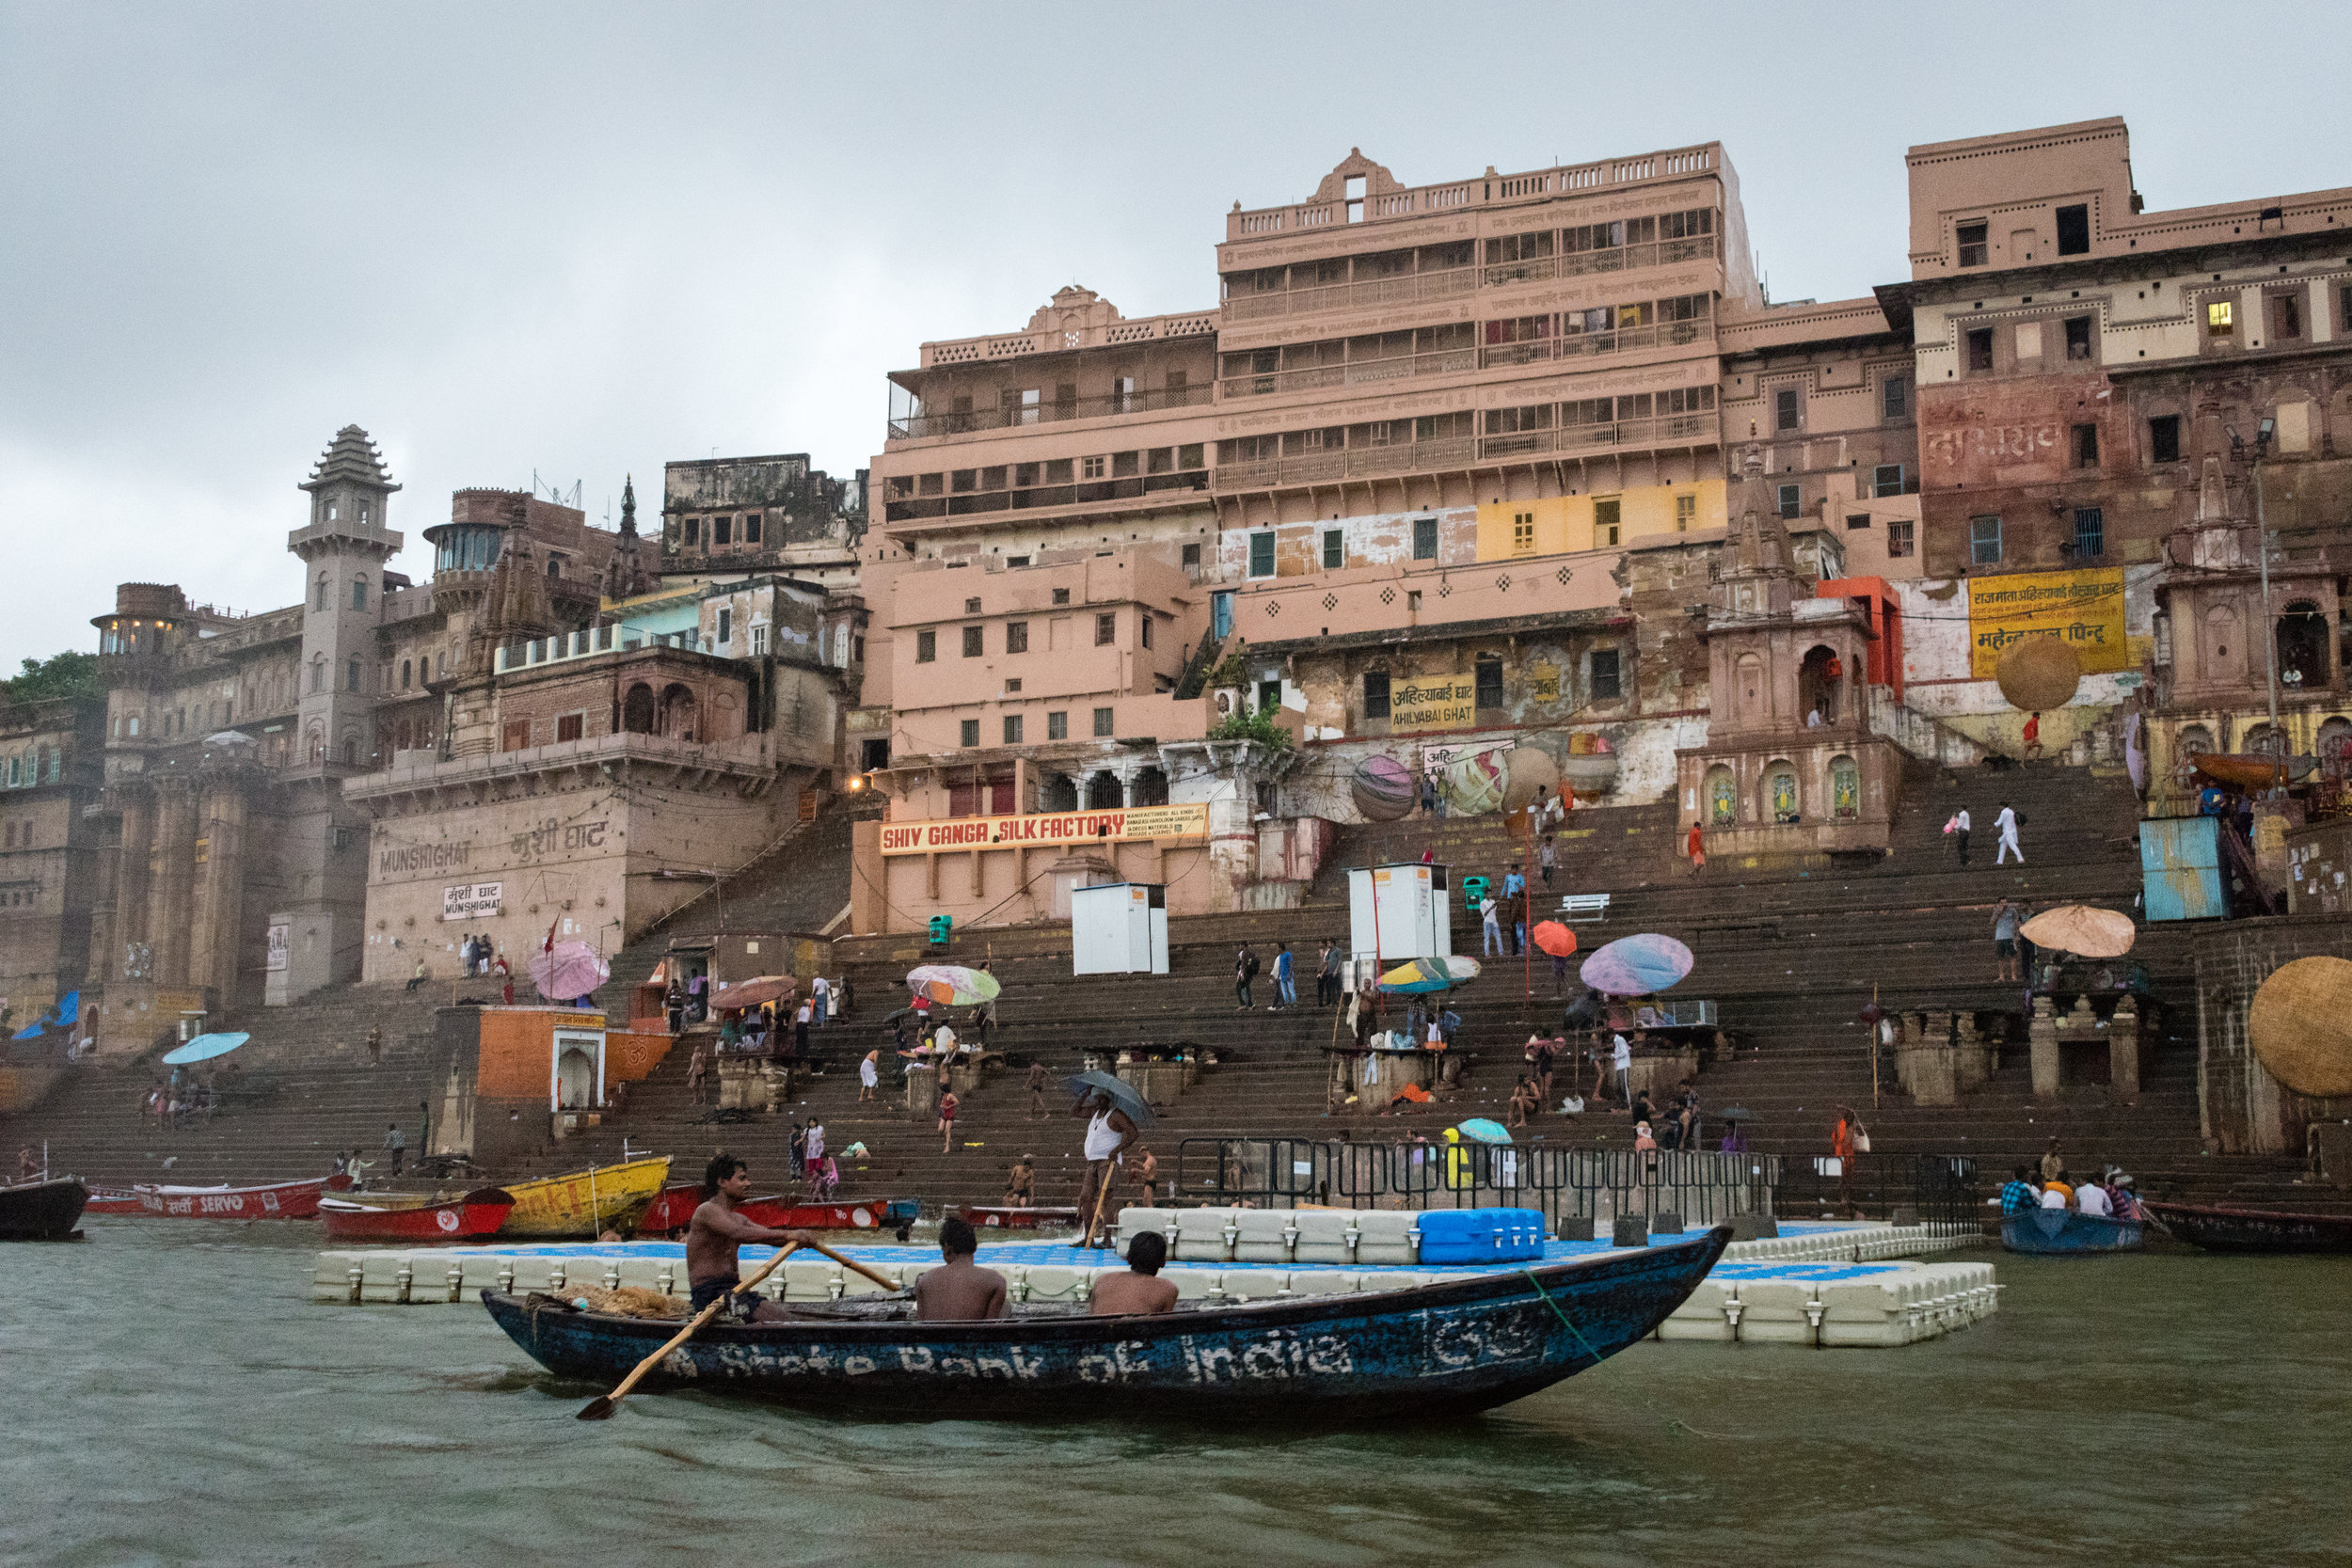 The Famous River Ganges and Ghats In Varanasi, India